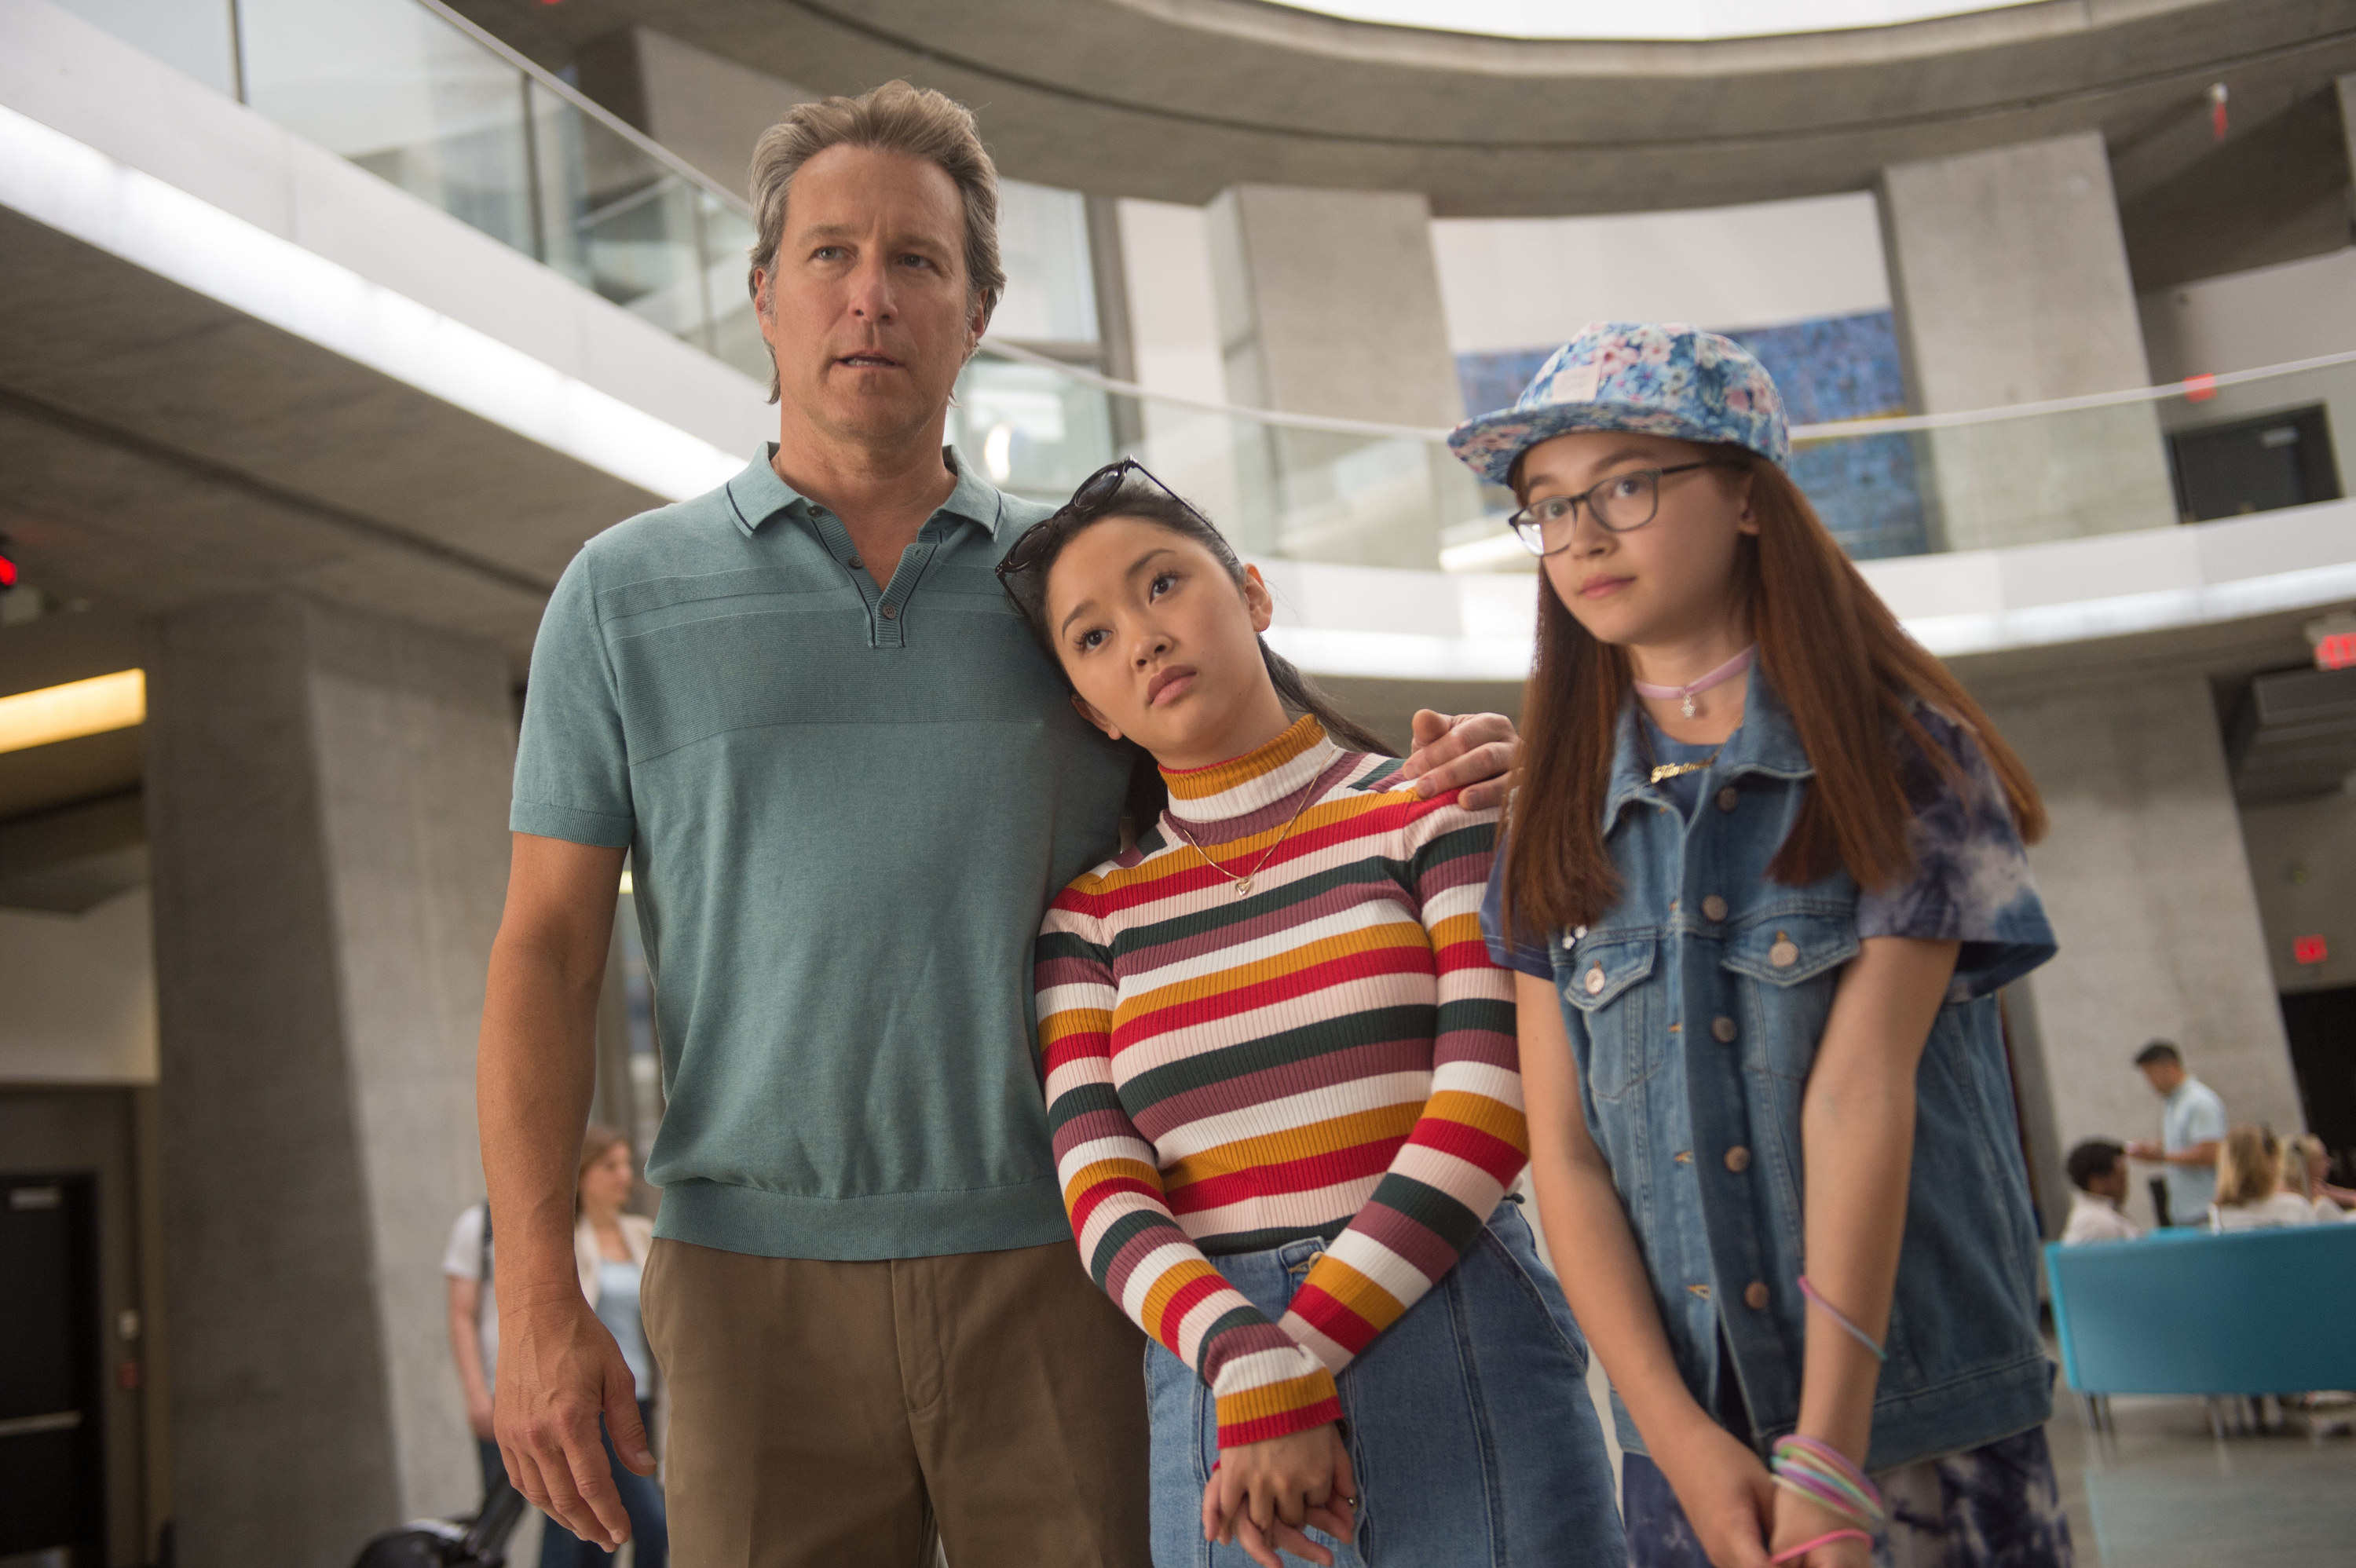 Lana Condor stands in between John Corbett and Anna Cathcart in To All the Boys I've Loved Before